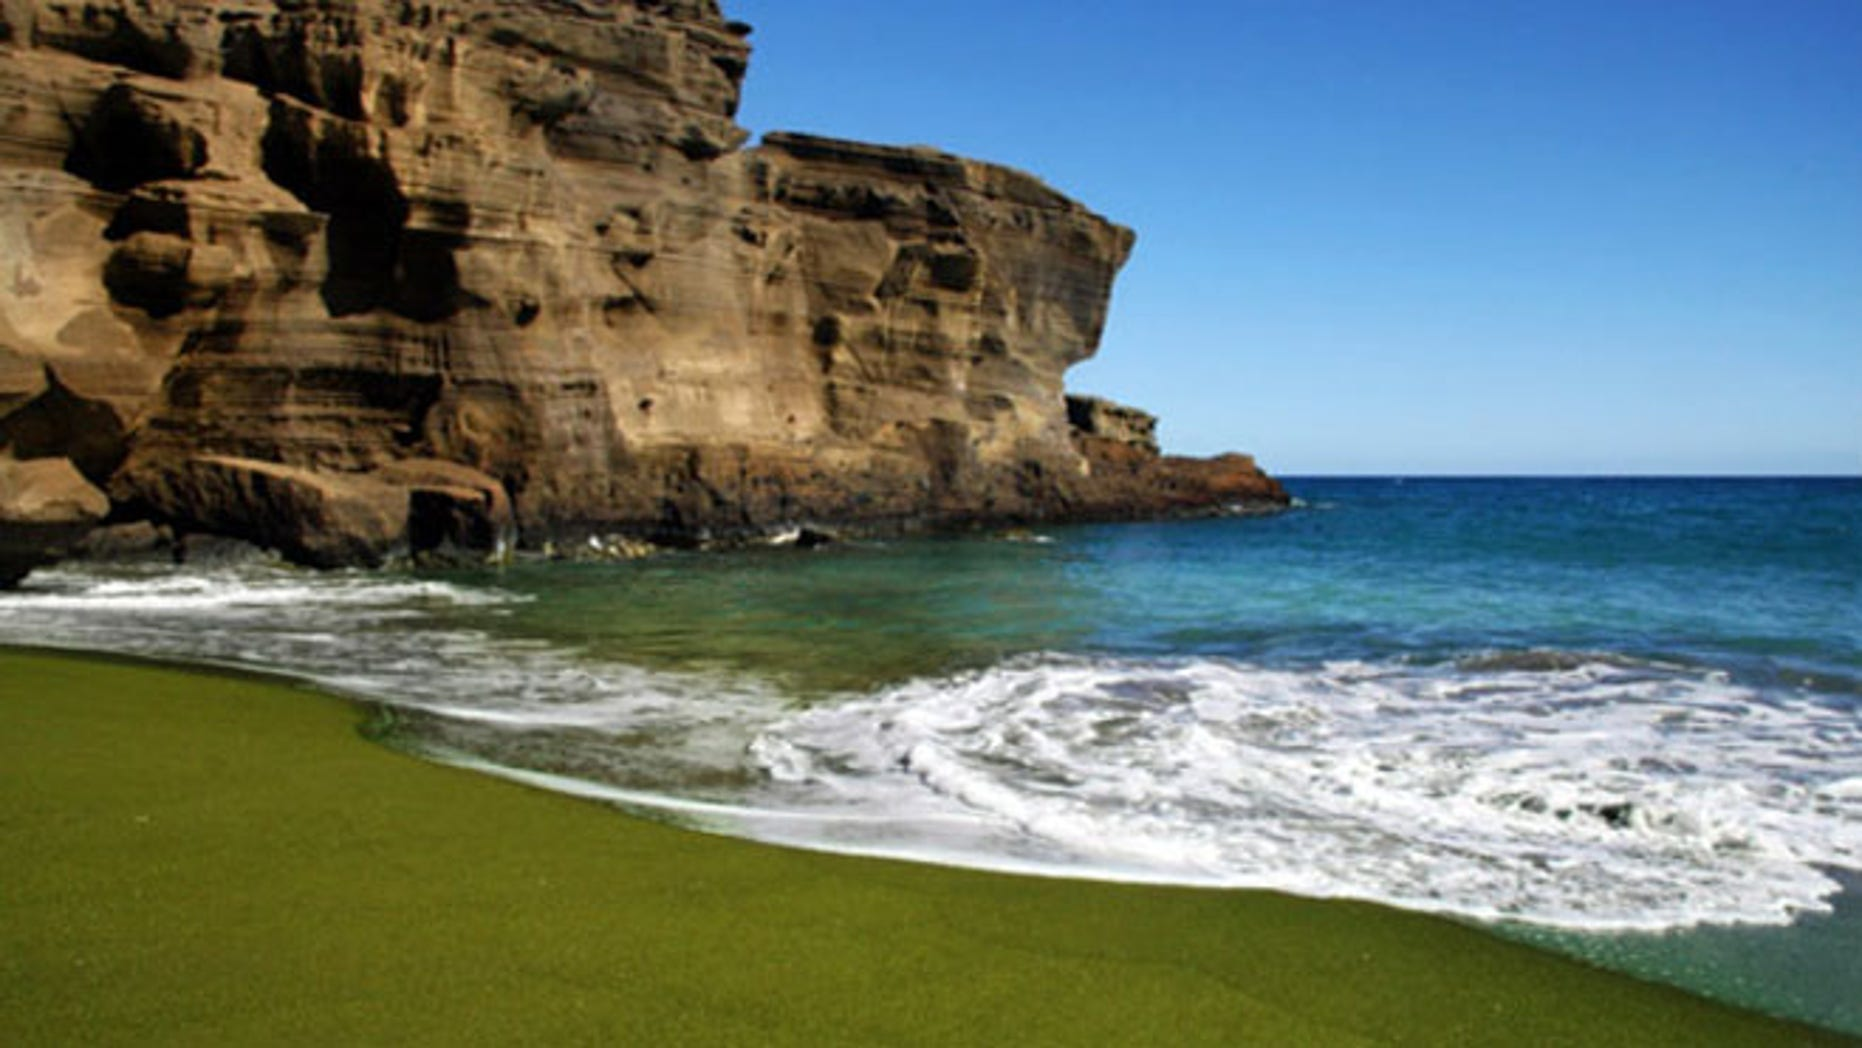 Papakolea Beach in Hawaii has a green hue due to the mineral content formed from volcanic called olivine, which is one of the first crystals to form as magma cools.